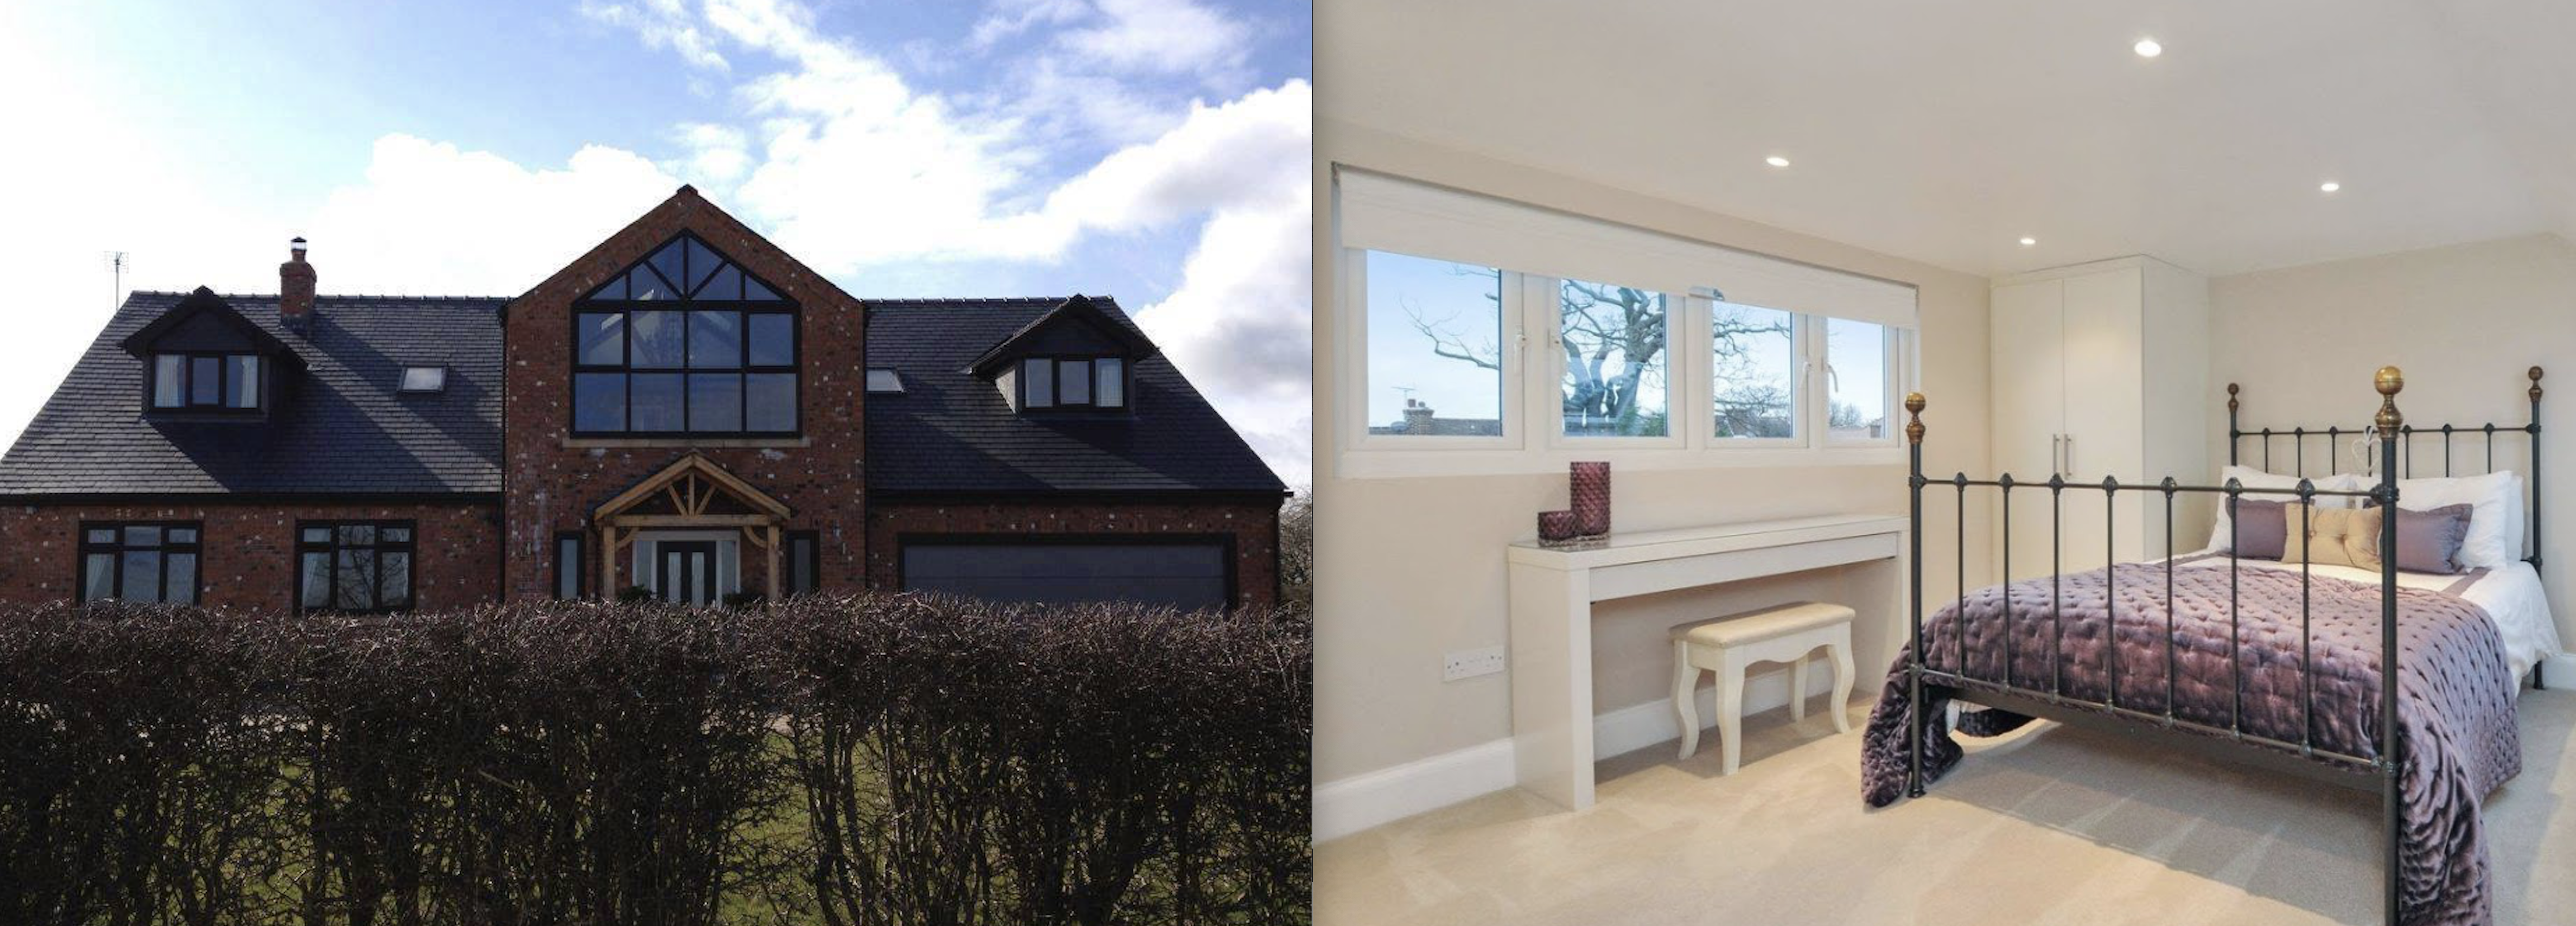 Beautiful Dormer loft conversion in Middleton, creating a new master bedroom with private bathroom, walk in wardrobe and stunning new oak staircase. Velux polyurethane SK06 GGU windows.